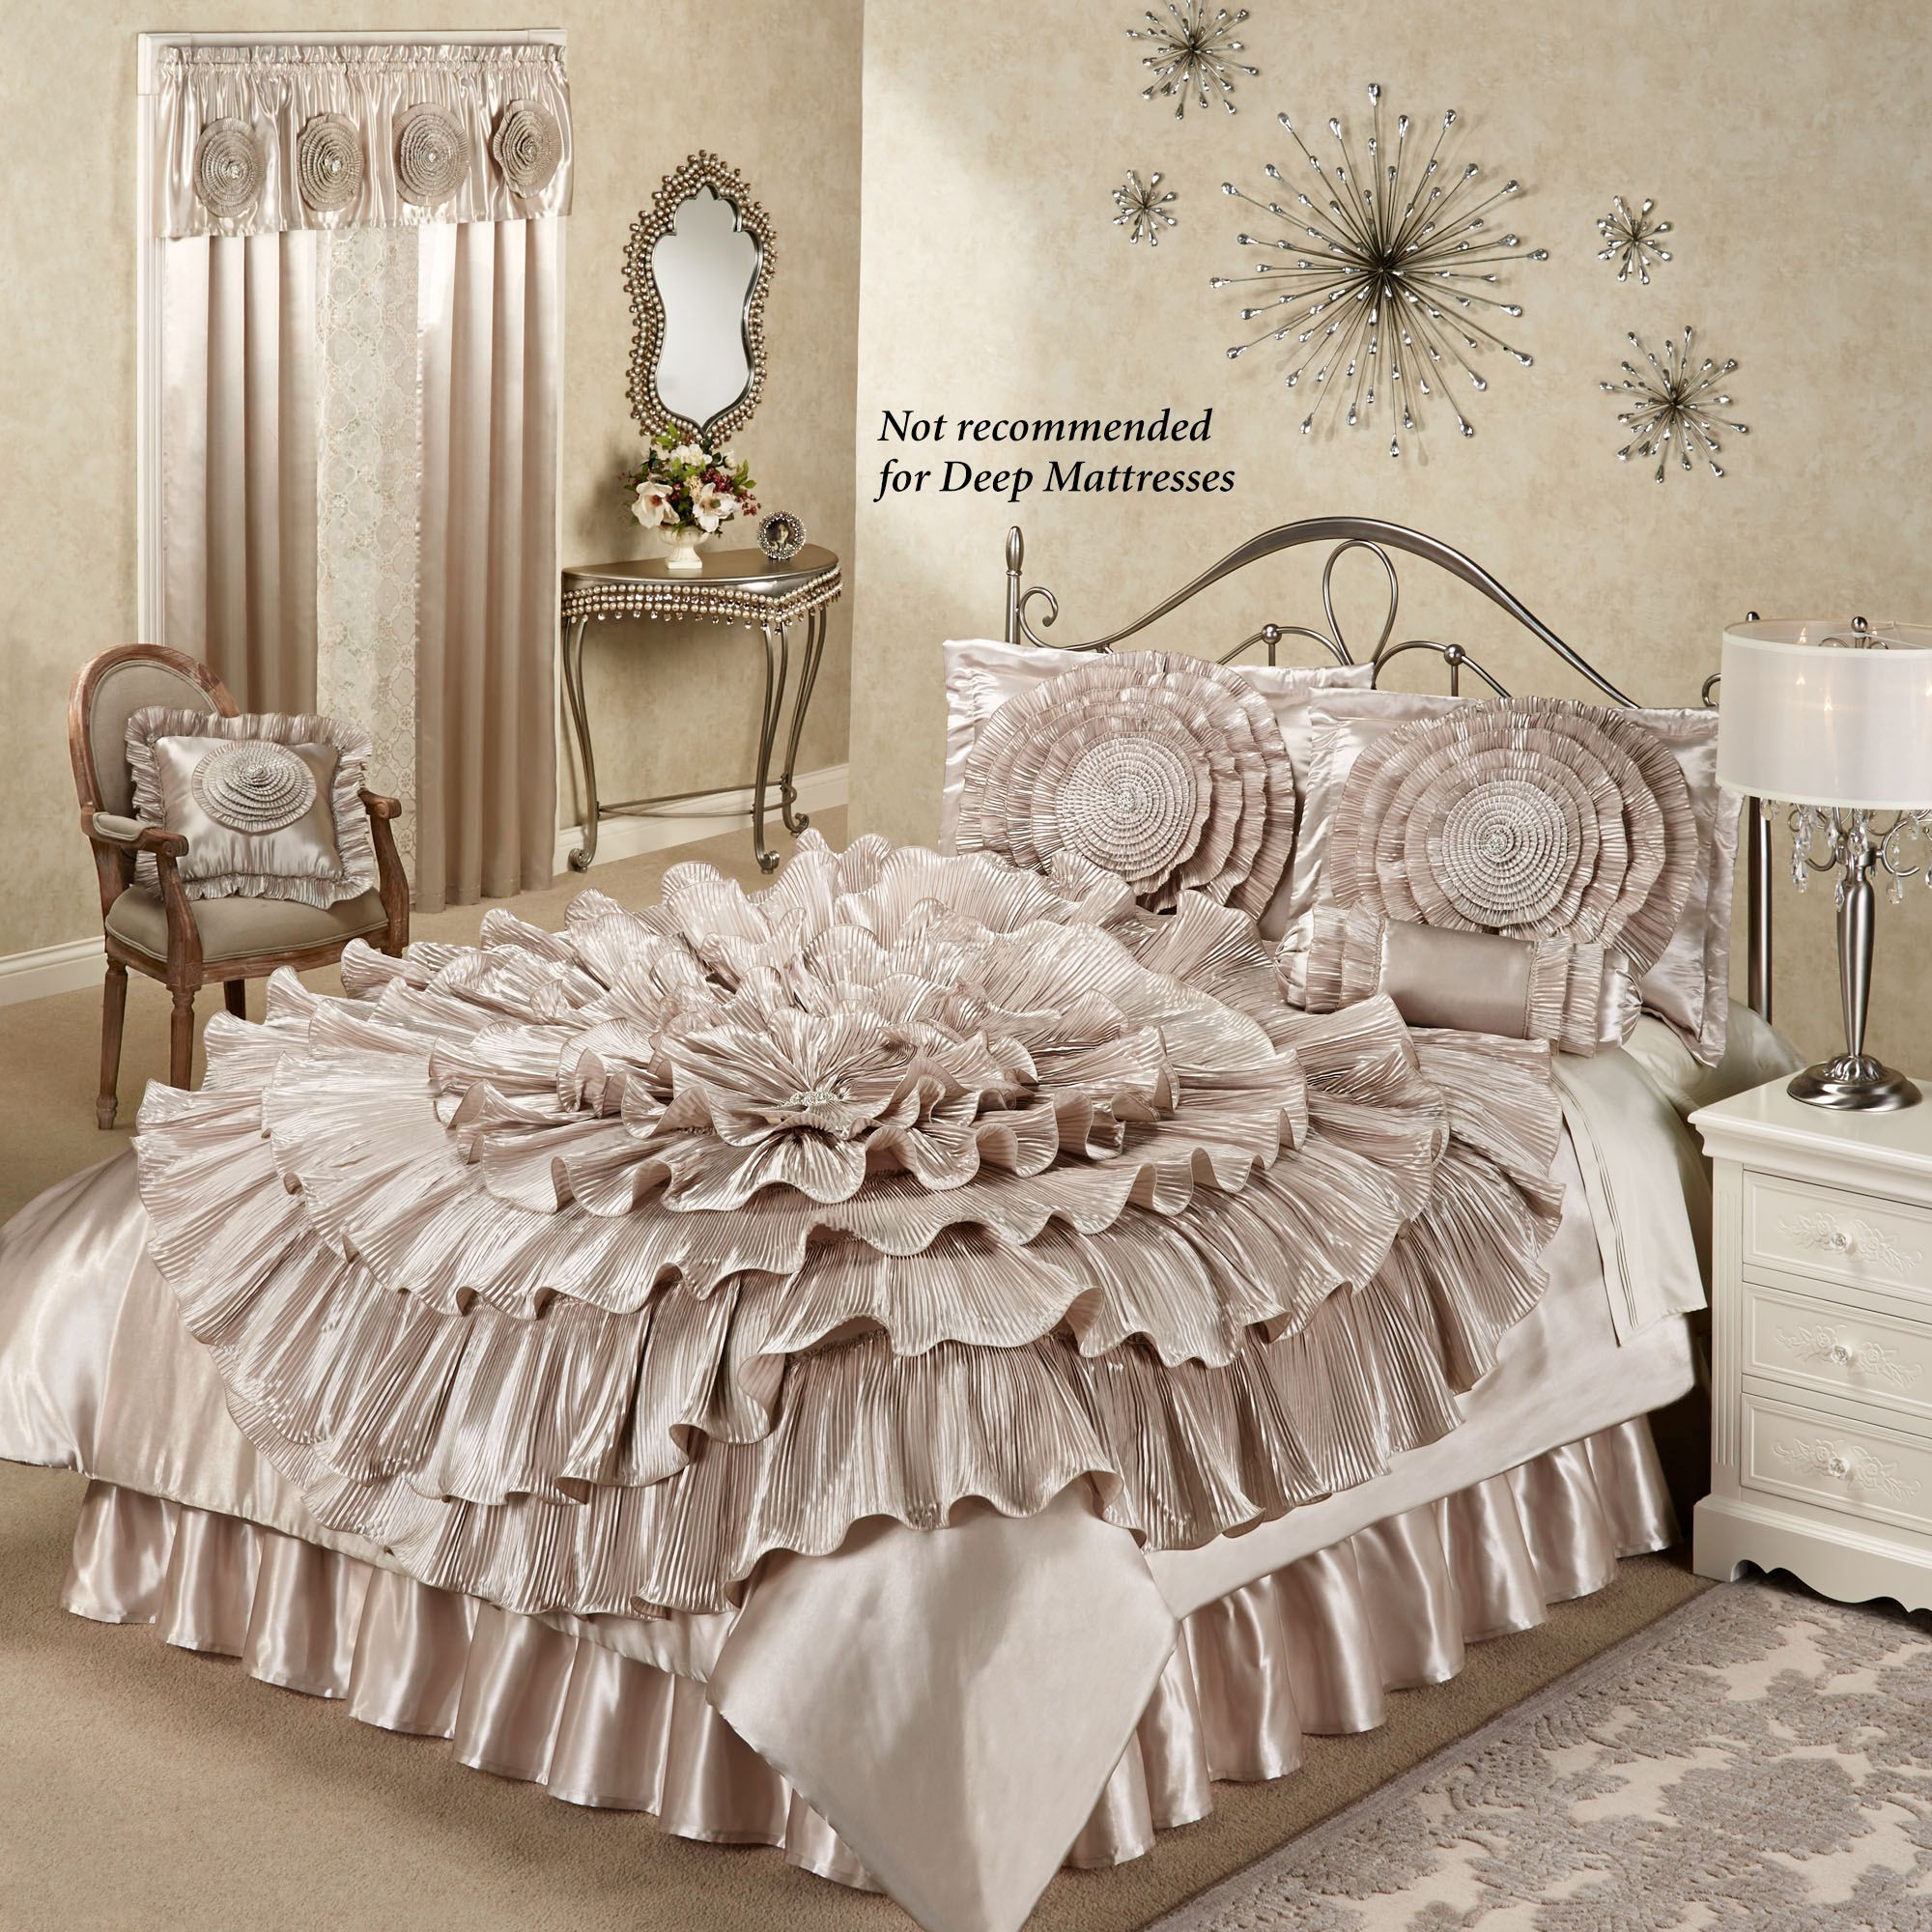 Champagne bedroom home ruffled romance champagne for Black and white romantic bedroom ideas